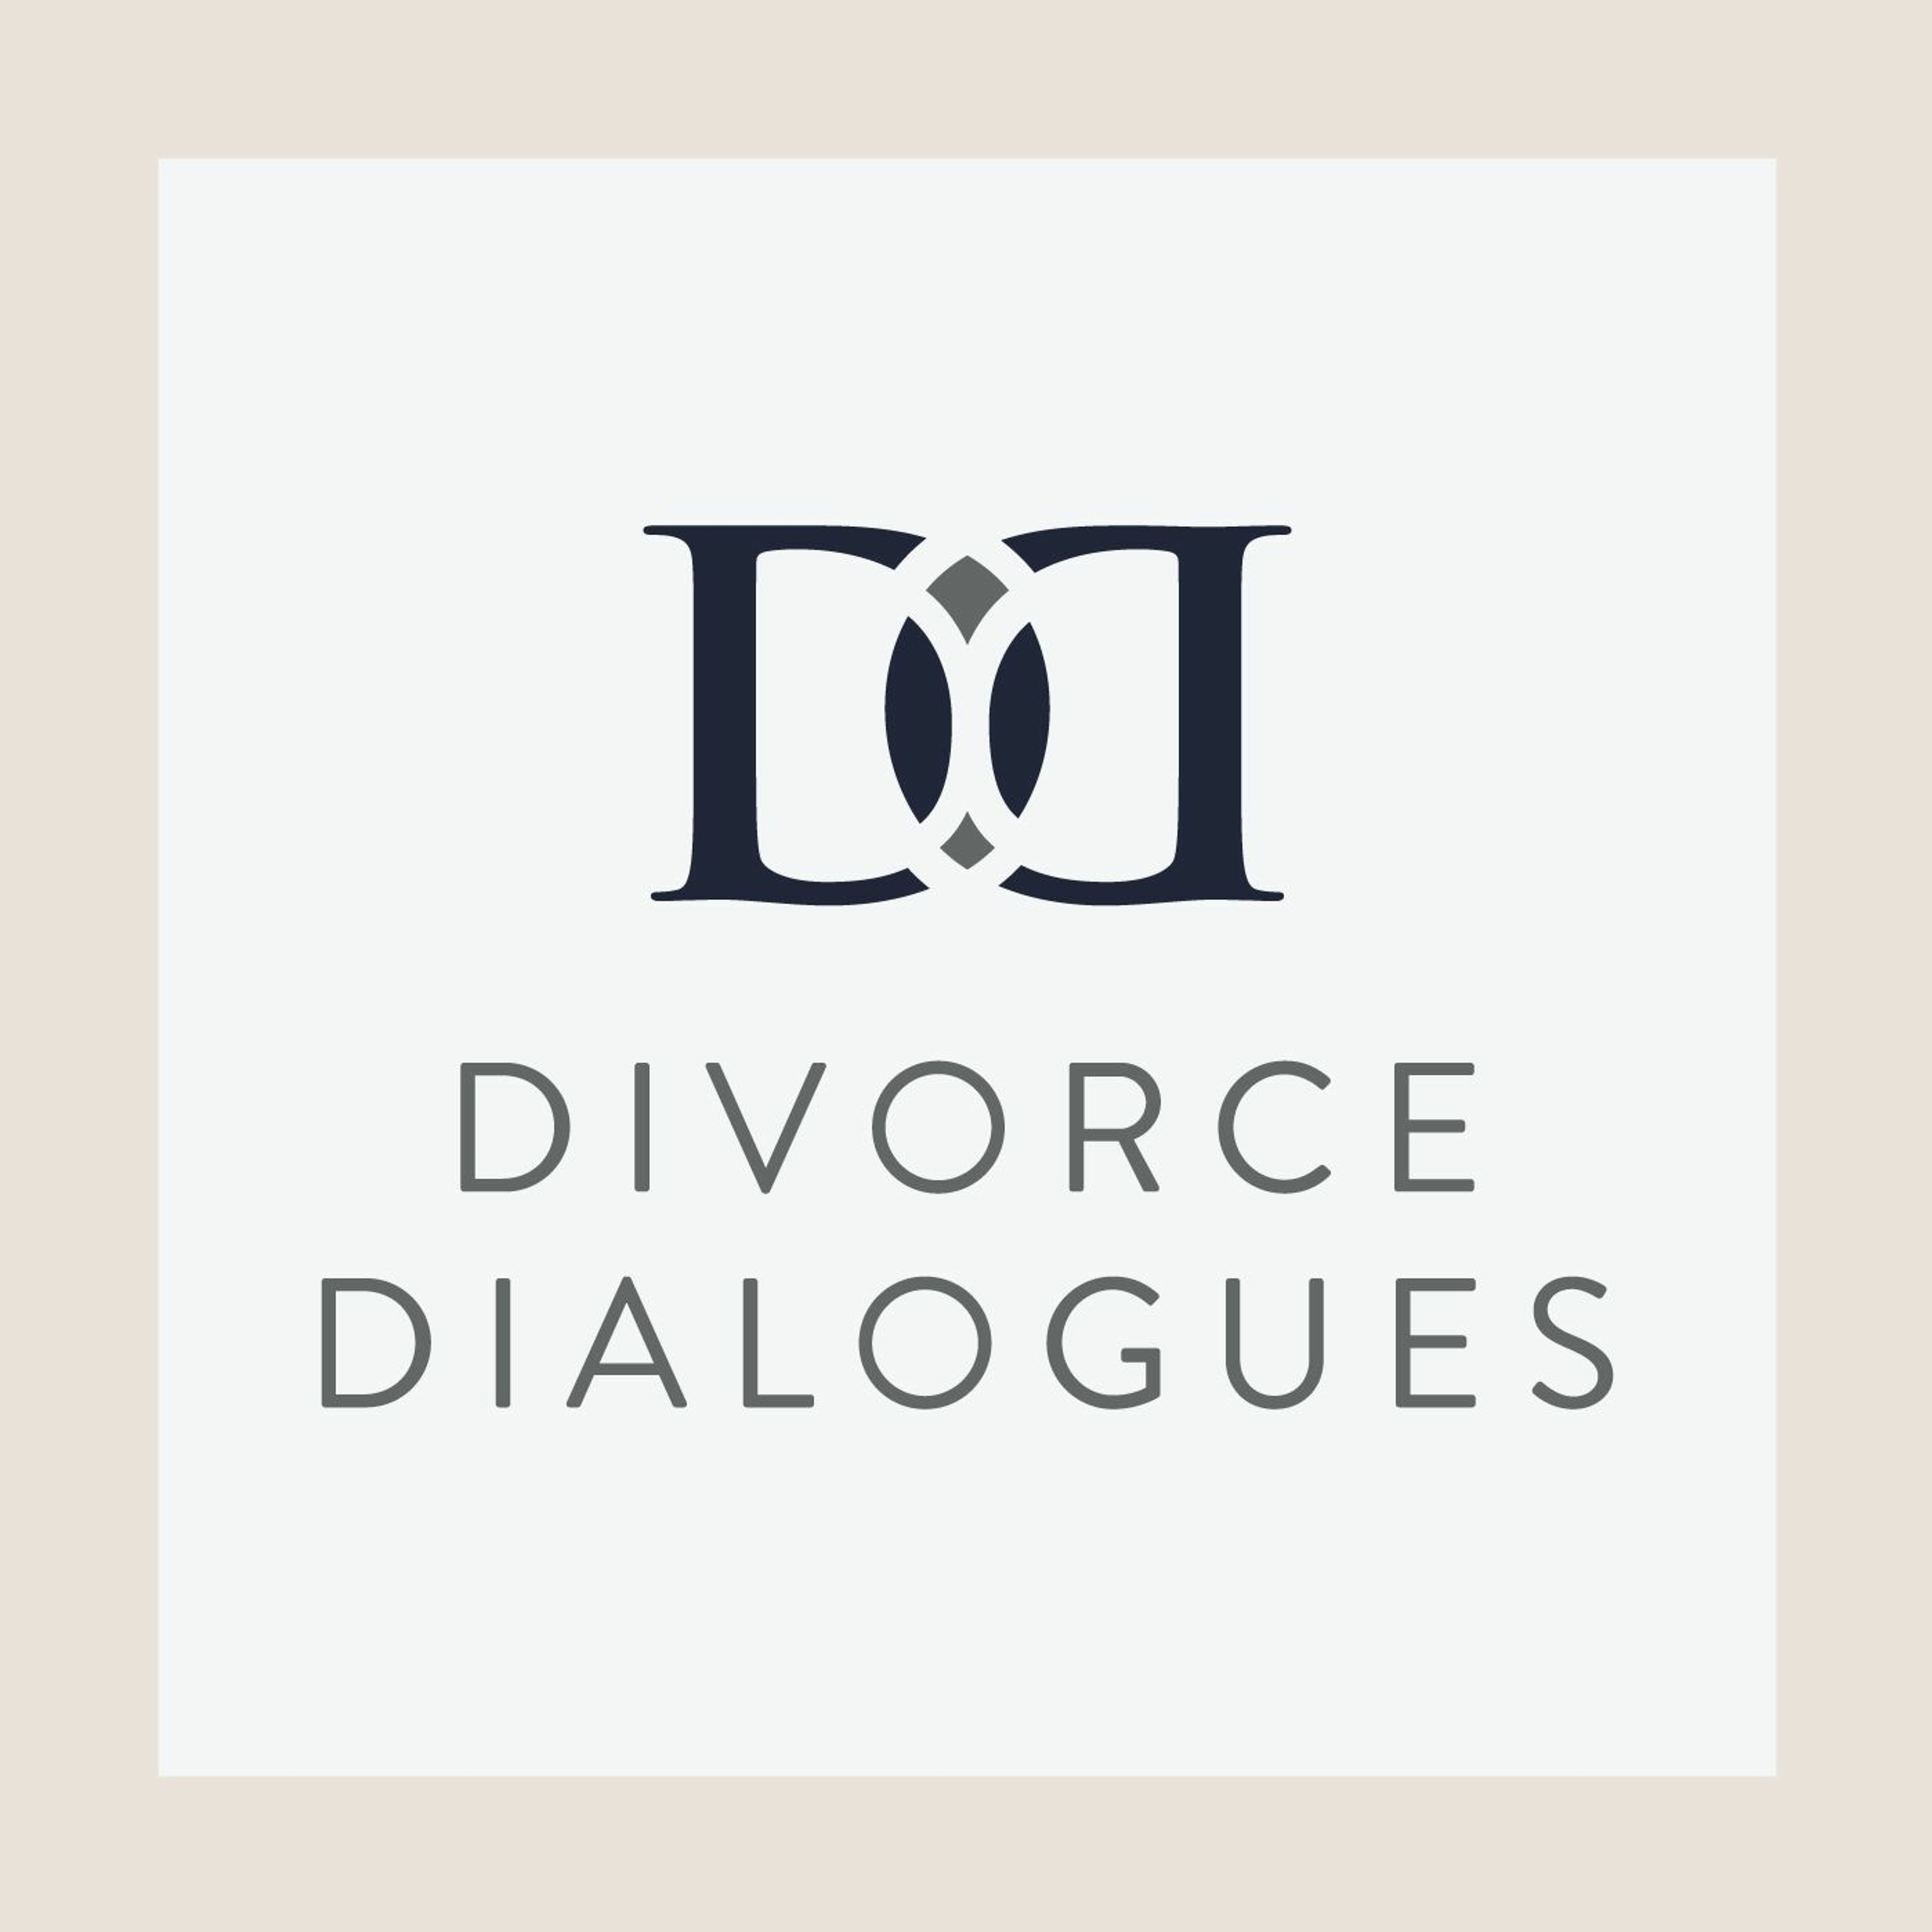 Divorce Dialogues - Couples Counseling BEFORE the Wheels Come Off with Rachel & Kyle Wright